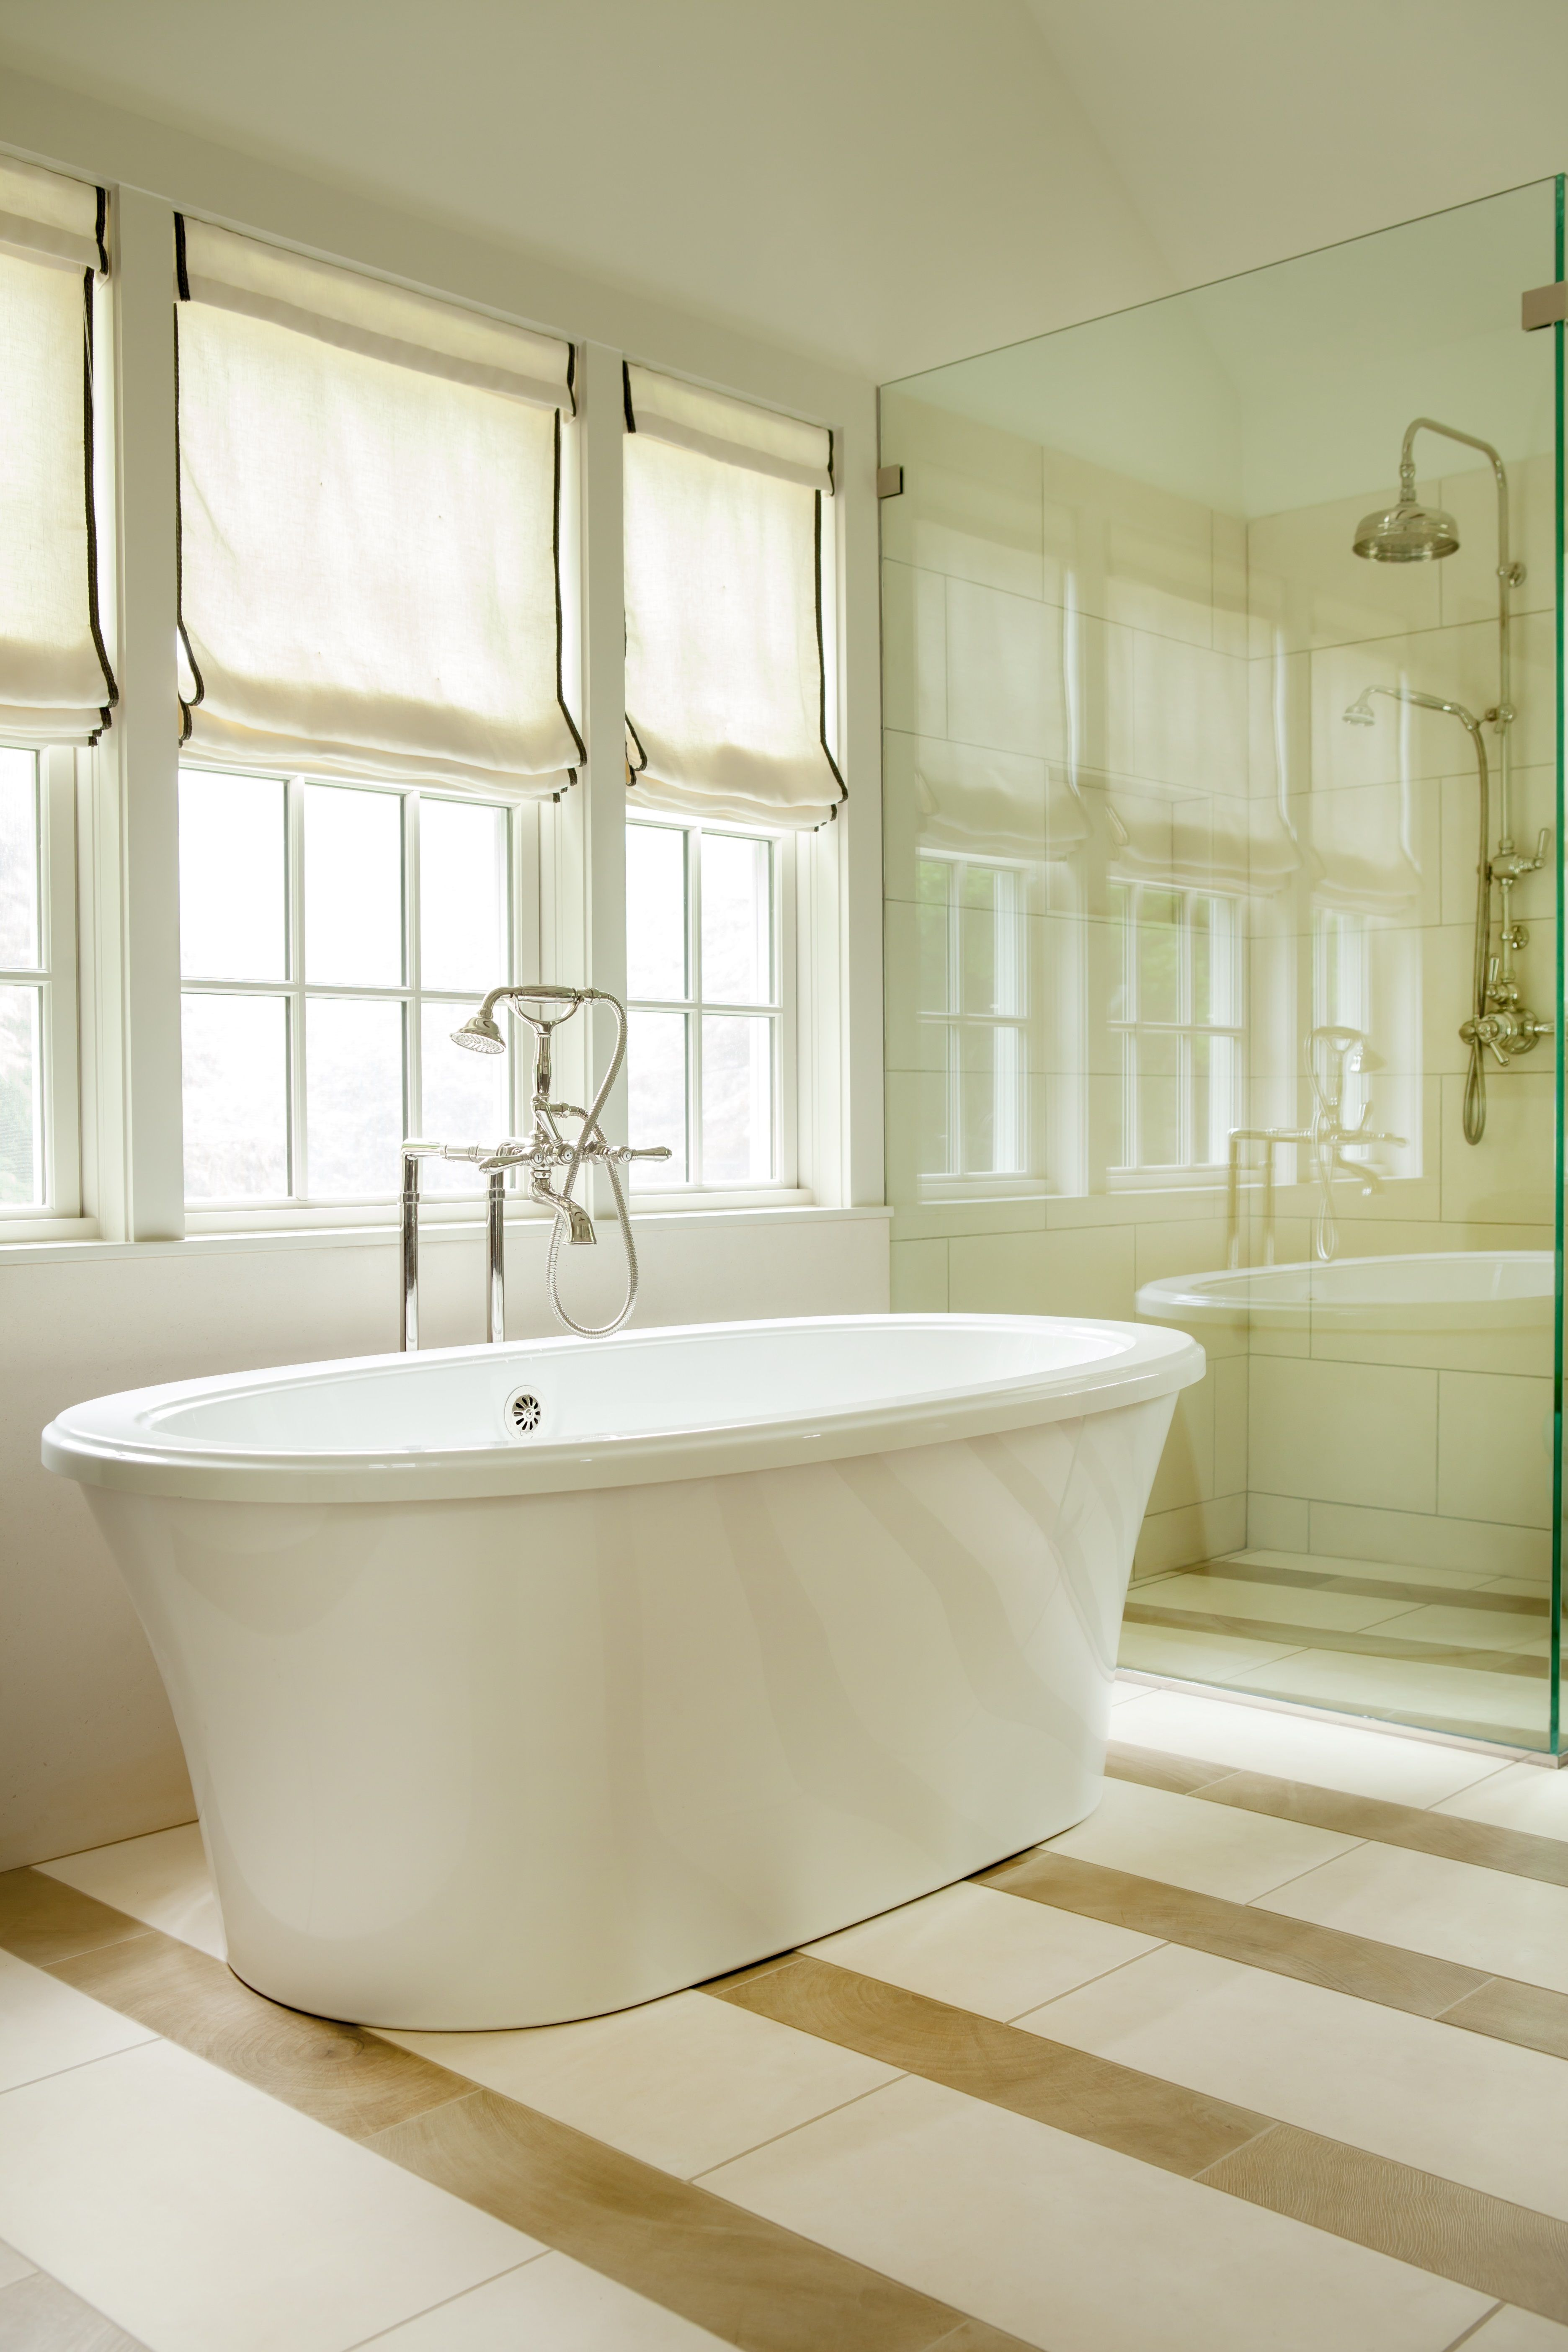 Nothing beats a nice, long bath in a #therapeutic #bathtub like this ...